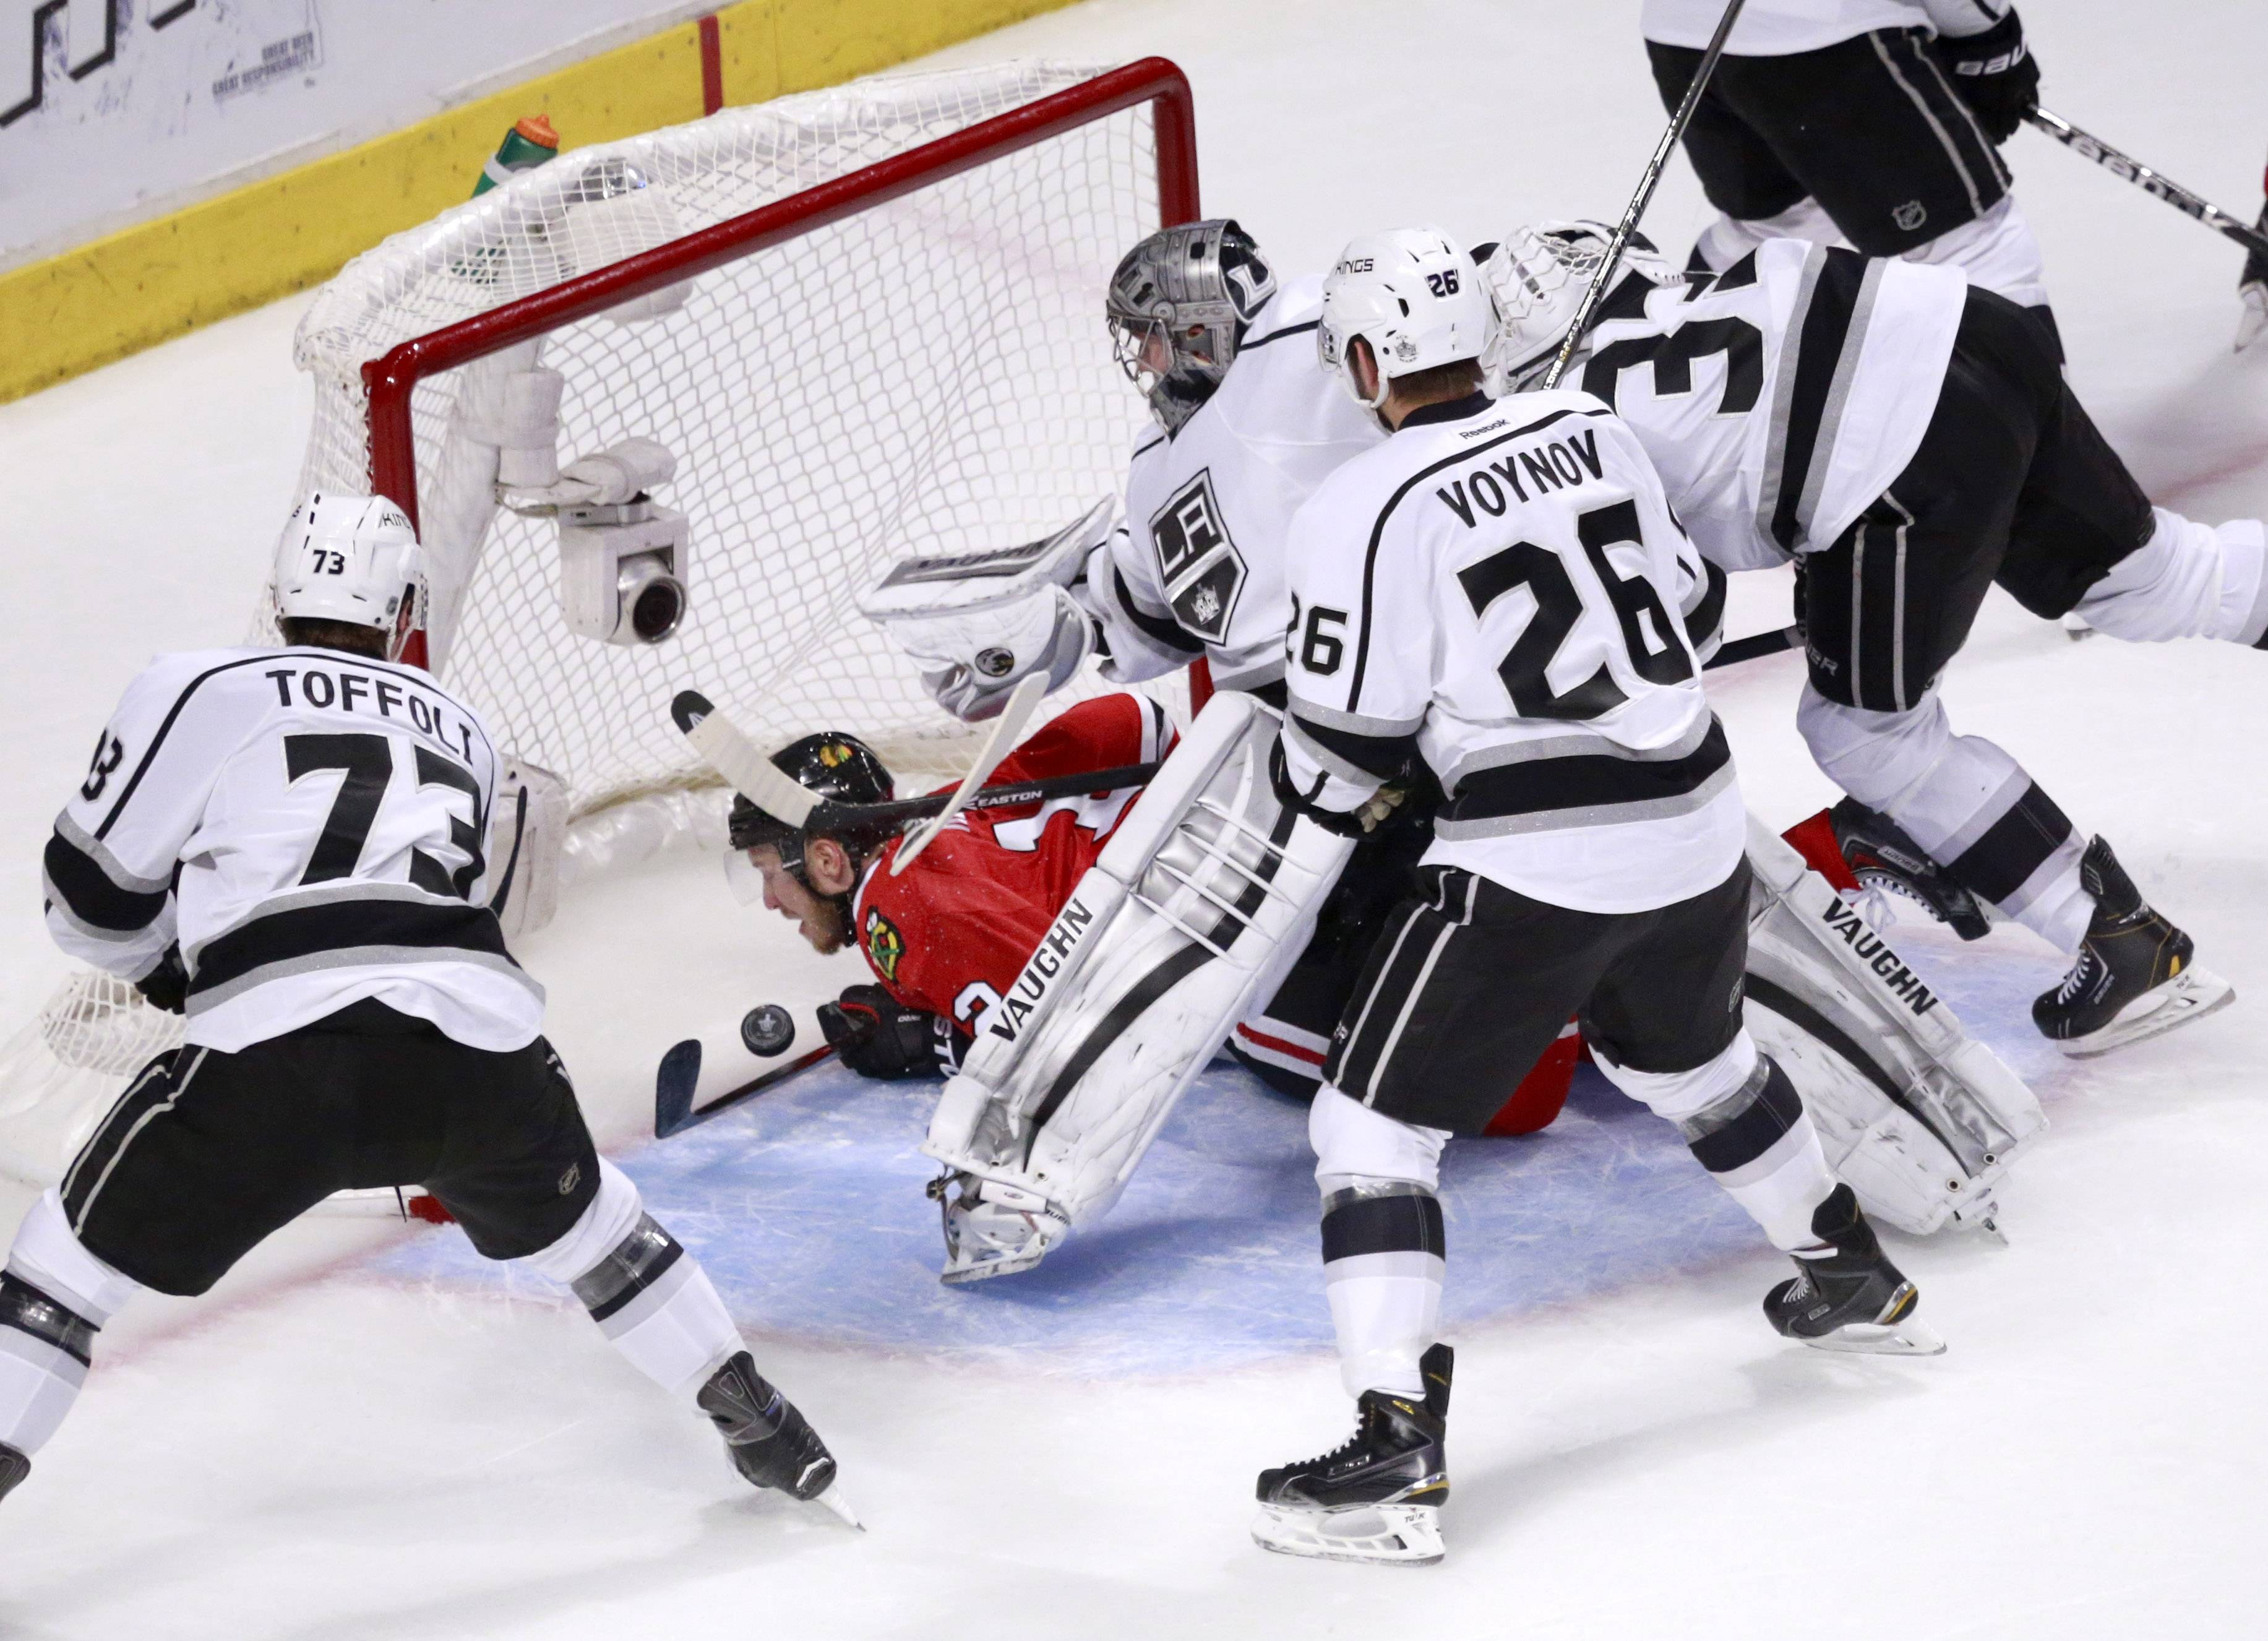 Blackhawks center Peter Regin gets crosschecked into the goal by Kings defenseman Willie Mitchell past goalie Jonathan Quick as Tyler Toffoli and Slava Voynov watch during the first period Wednesday. The Hawks went on a power play and cashed in when Nick Leddy beat Jonathan Quick with a backhander.